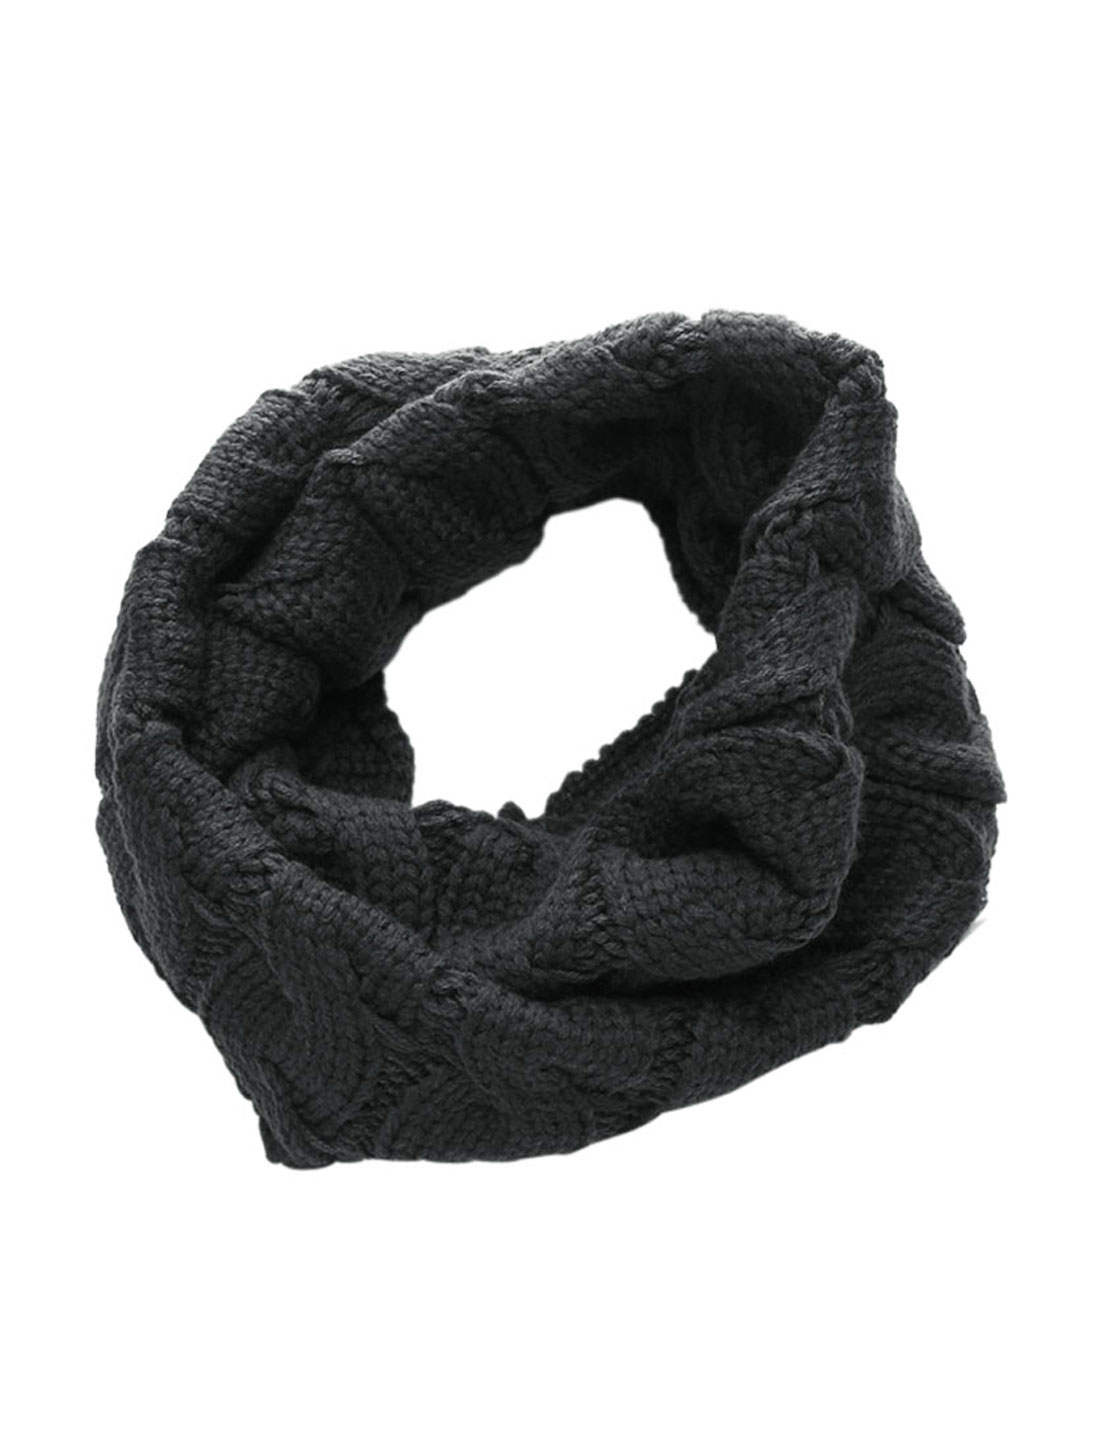 Mens Dark Gray Stylish Textured Detail Neckwear Circle Scarf